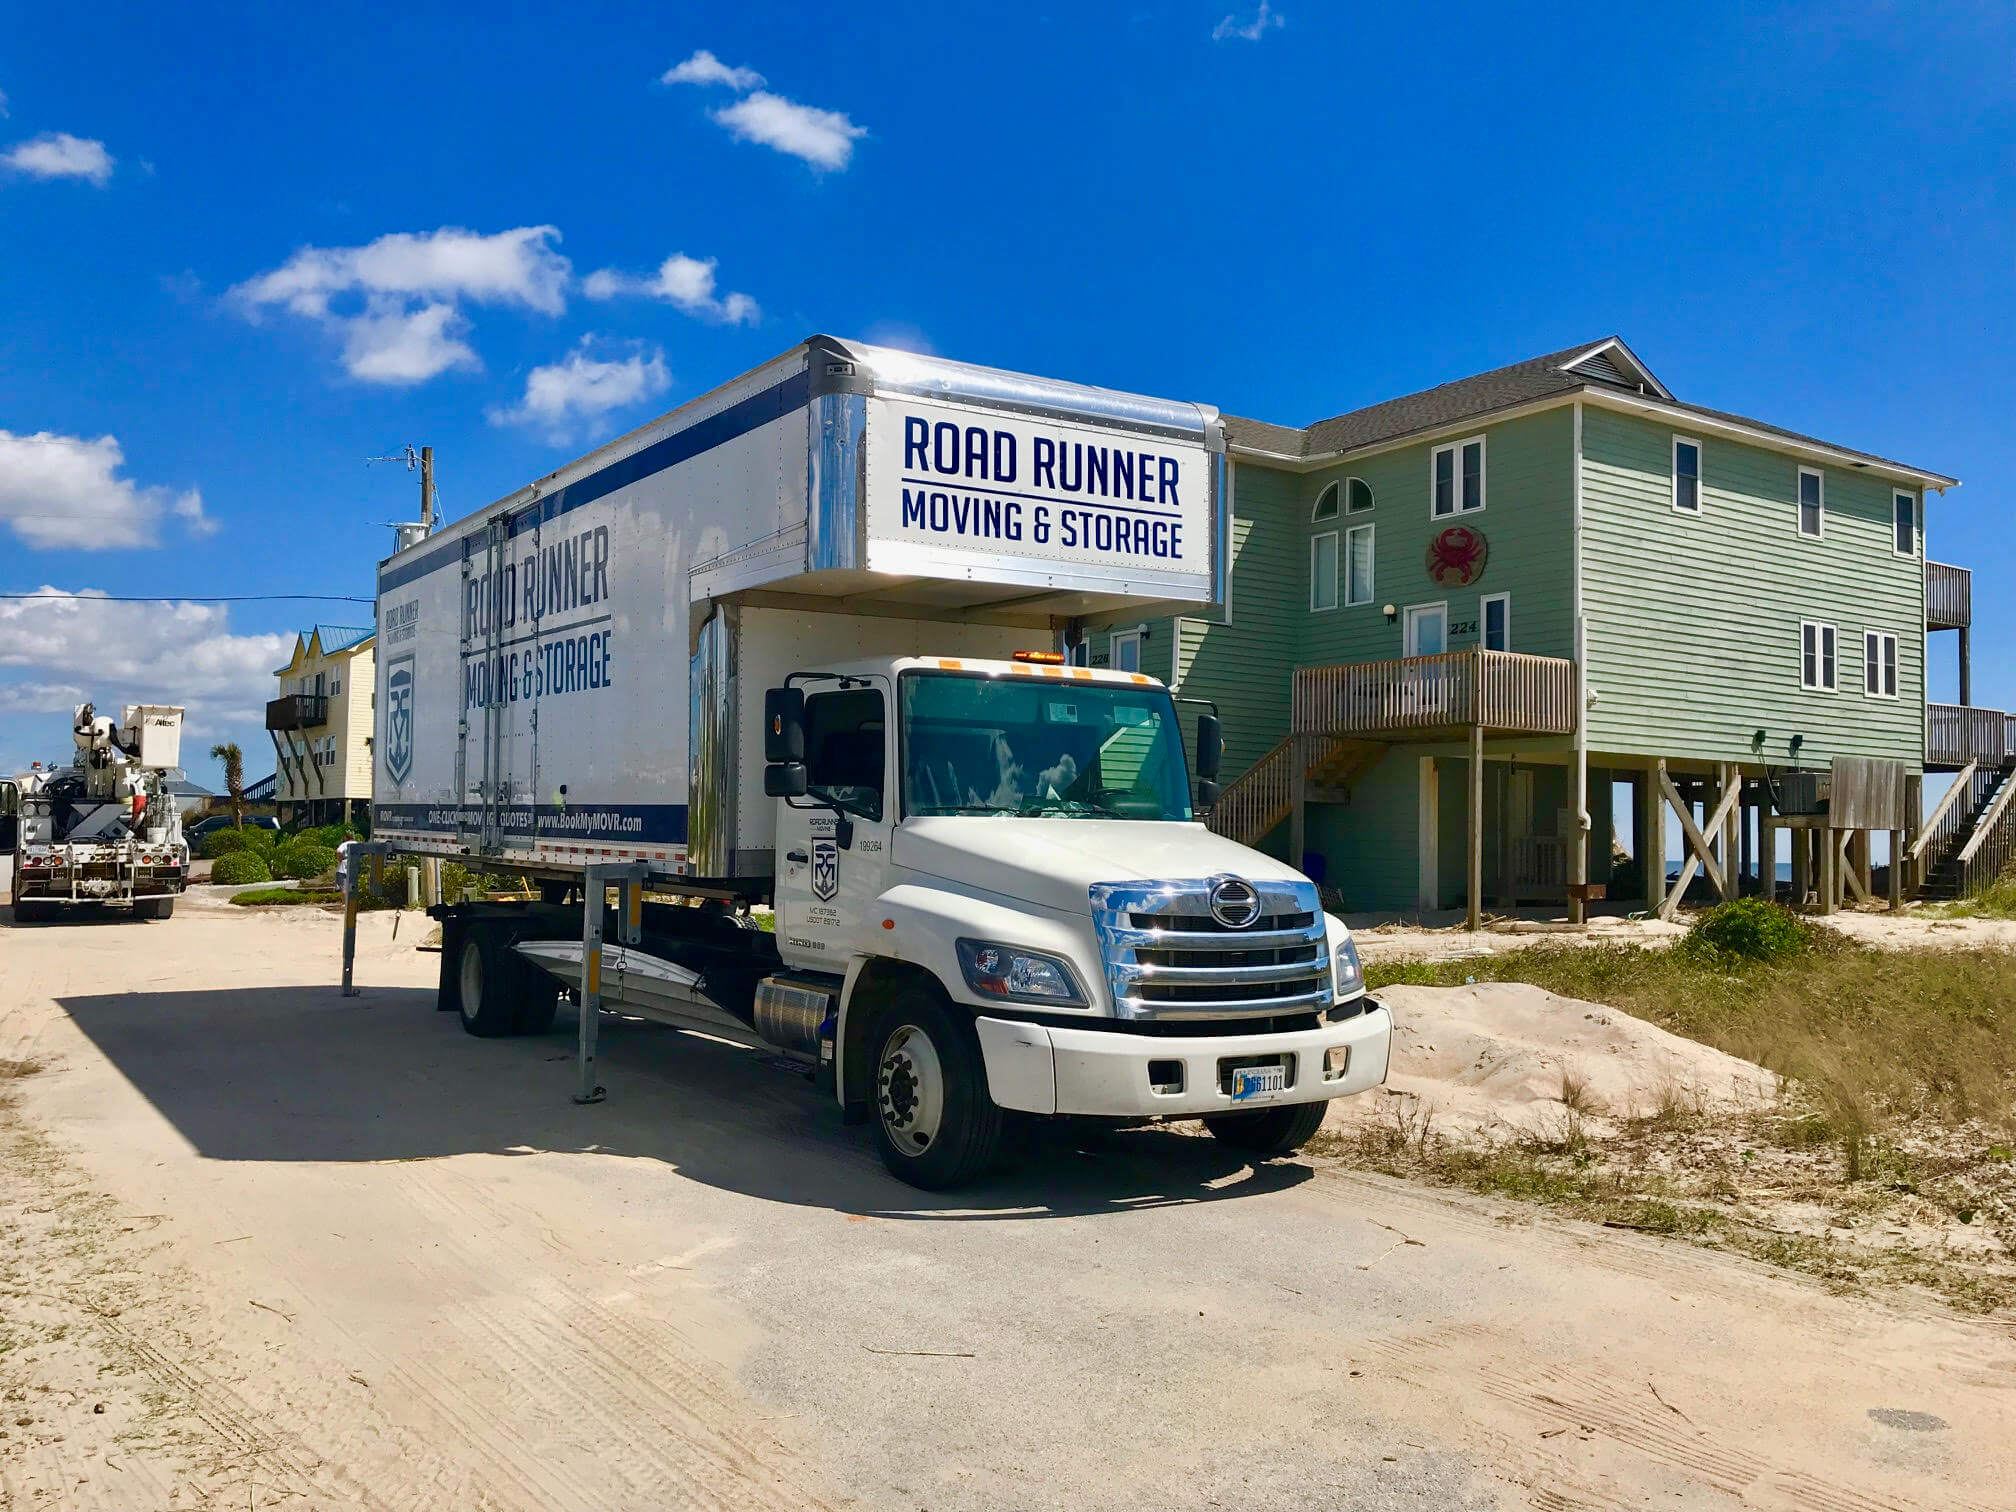 Road Runner Moving truck shown in Top Sail Beach, North Carolina after Hurricane Florence made landfall in September 2018. Our teams spent nearly 4 months in North Carolina after the storm helping hundreds of residents from Wilmington, NC to Jacksonville, NC.